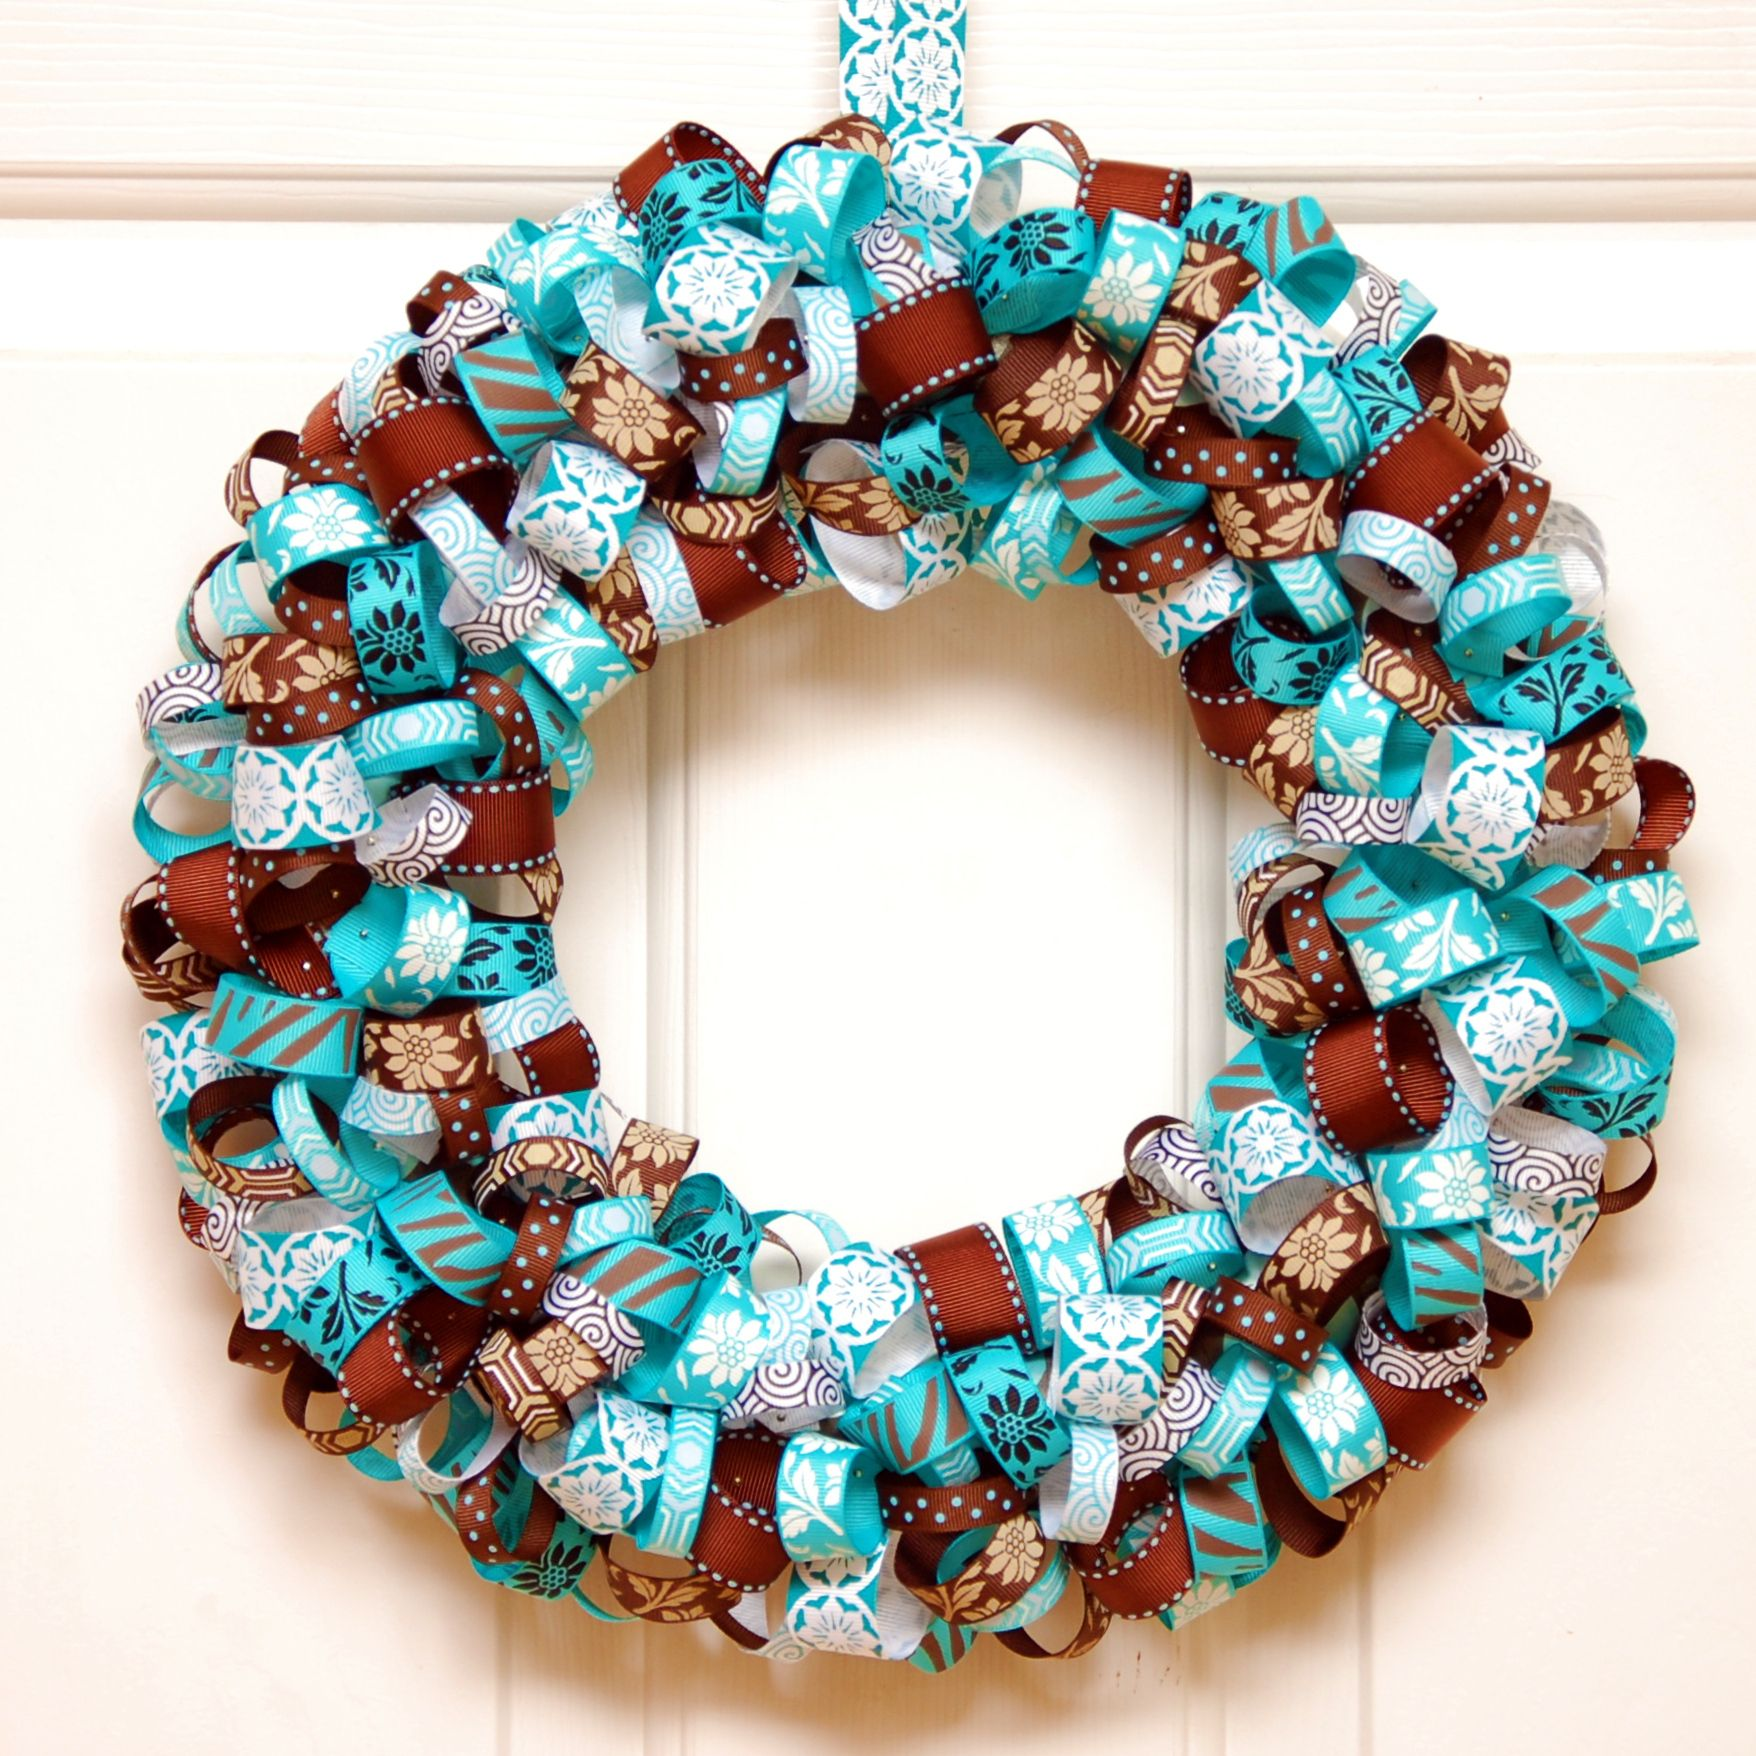 DIY Projects: Pretty DIY Fall Wreaths | Wreaths, Aqua and Ribbon wreath  tutorial